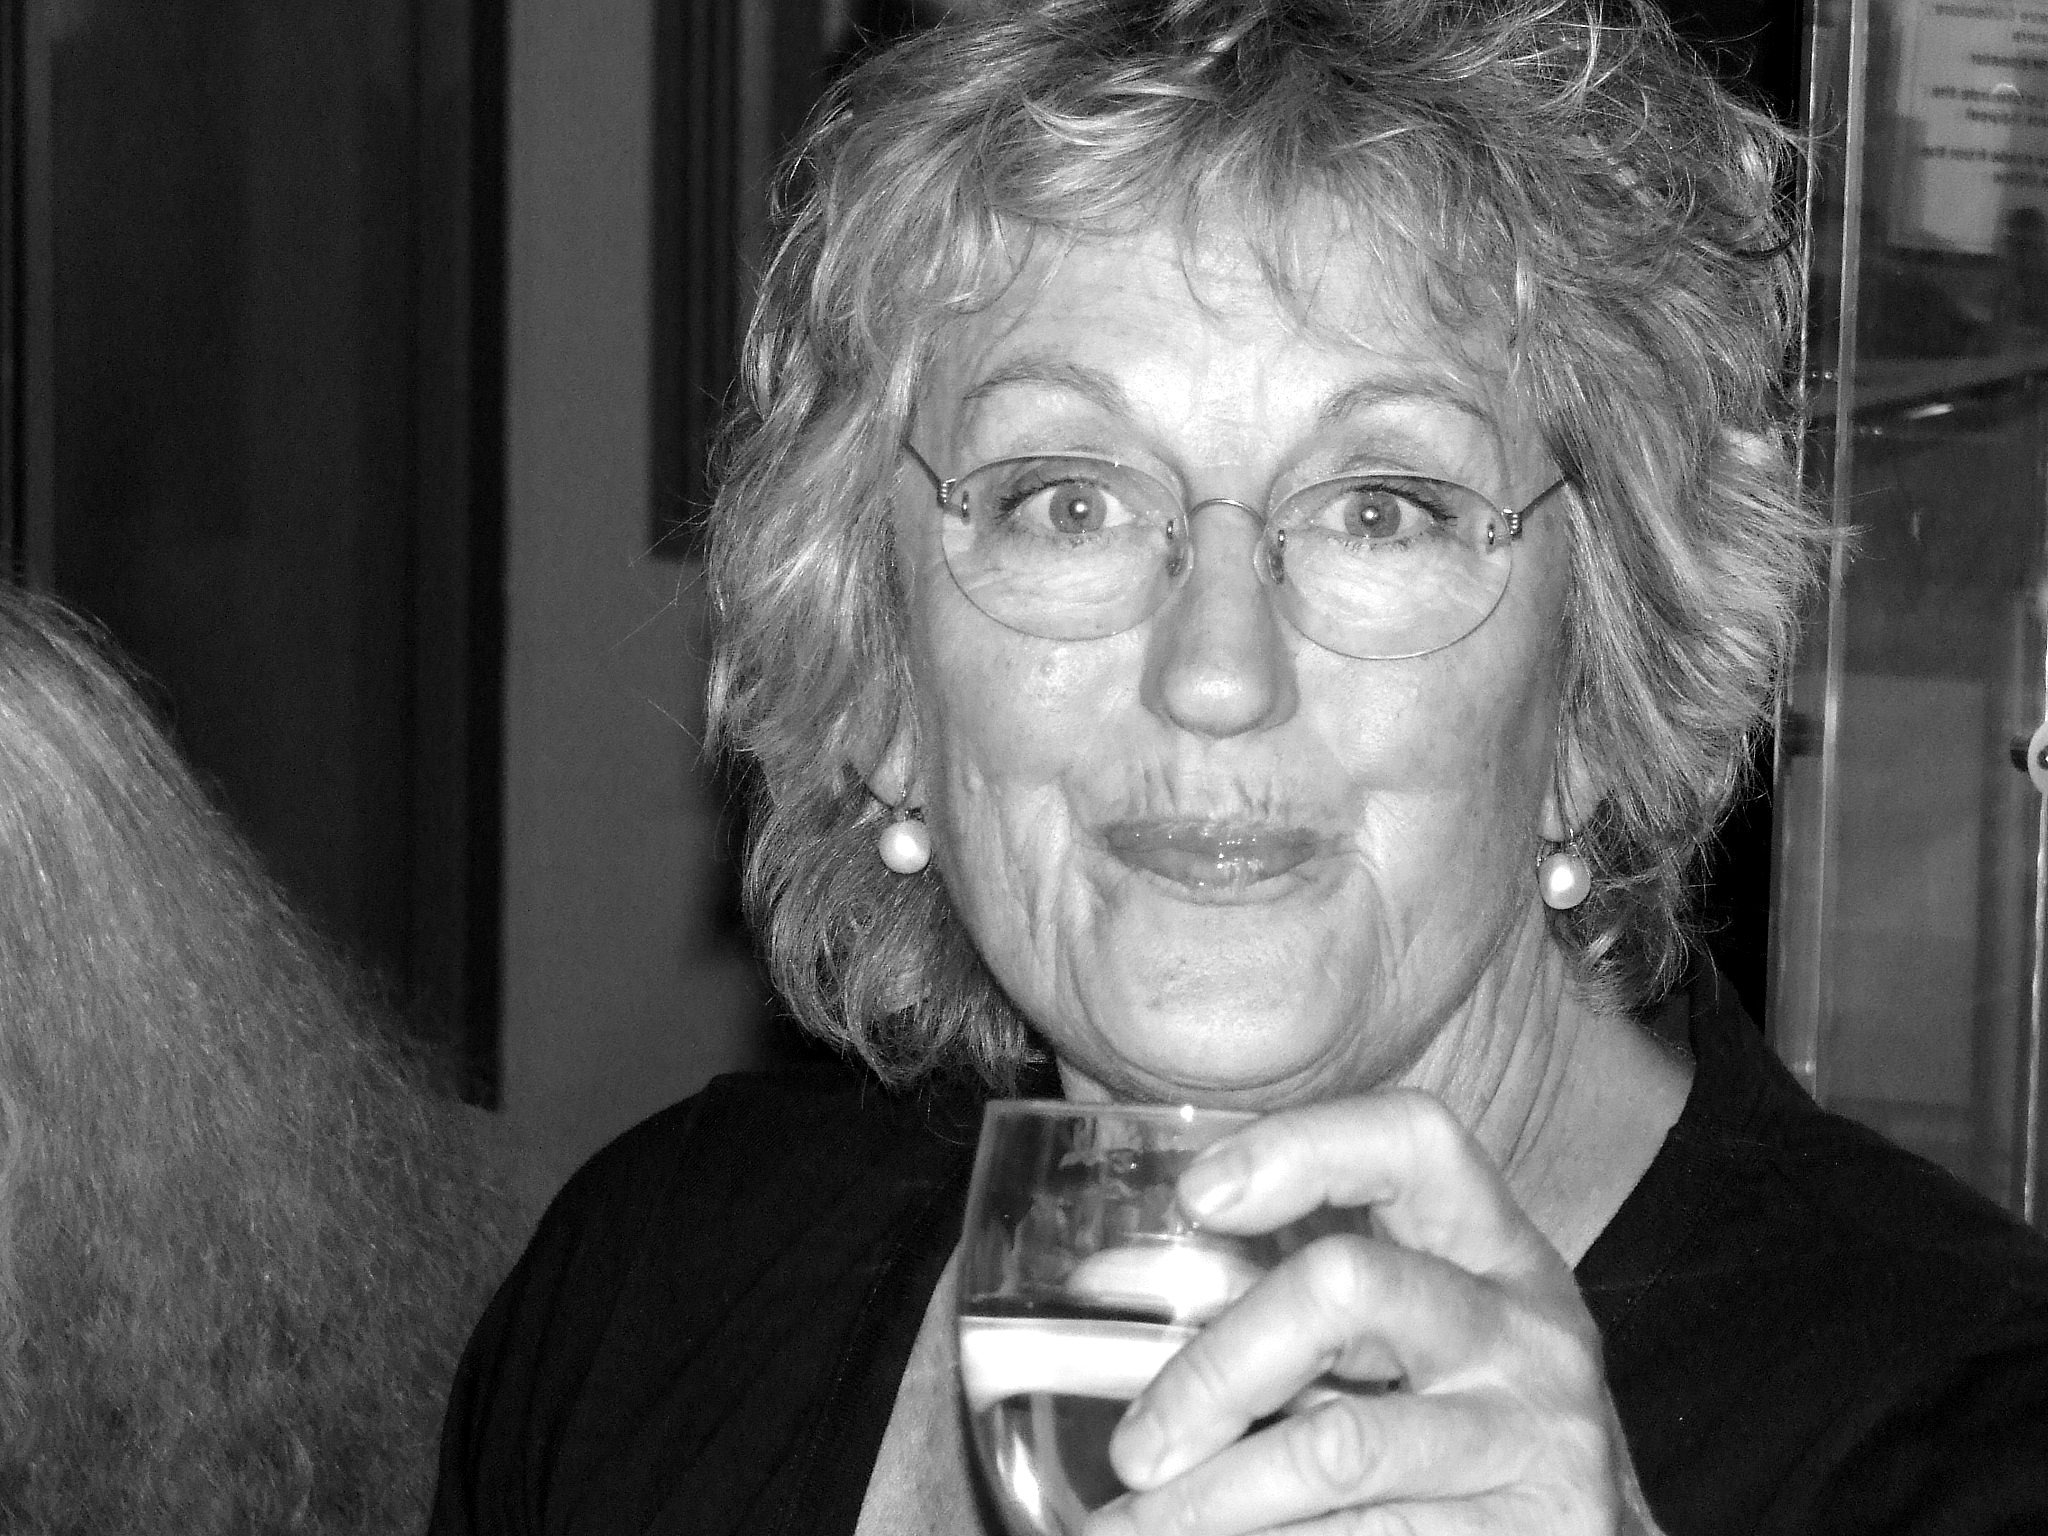 Even Germaine Greer is not safe from the PC mob